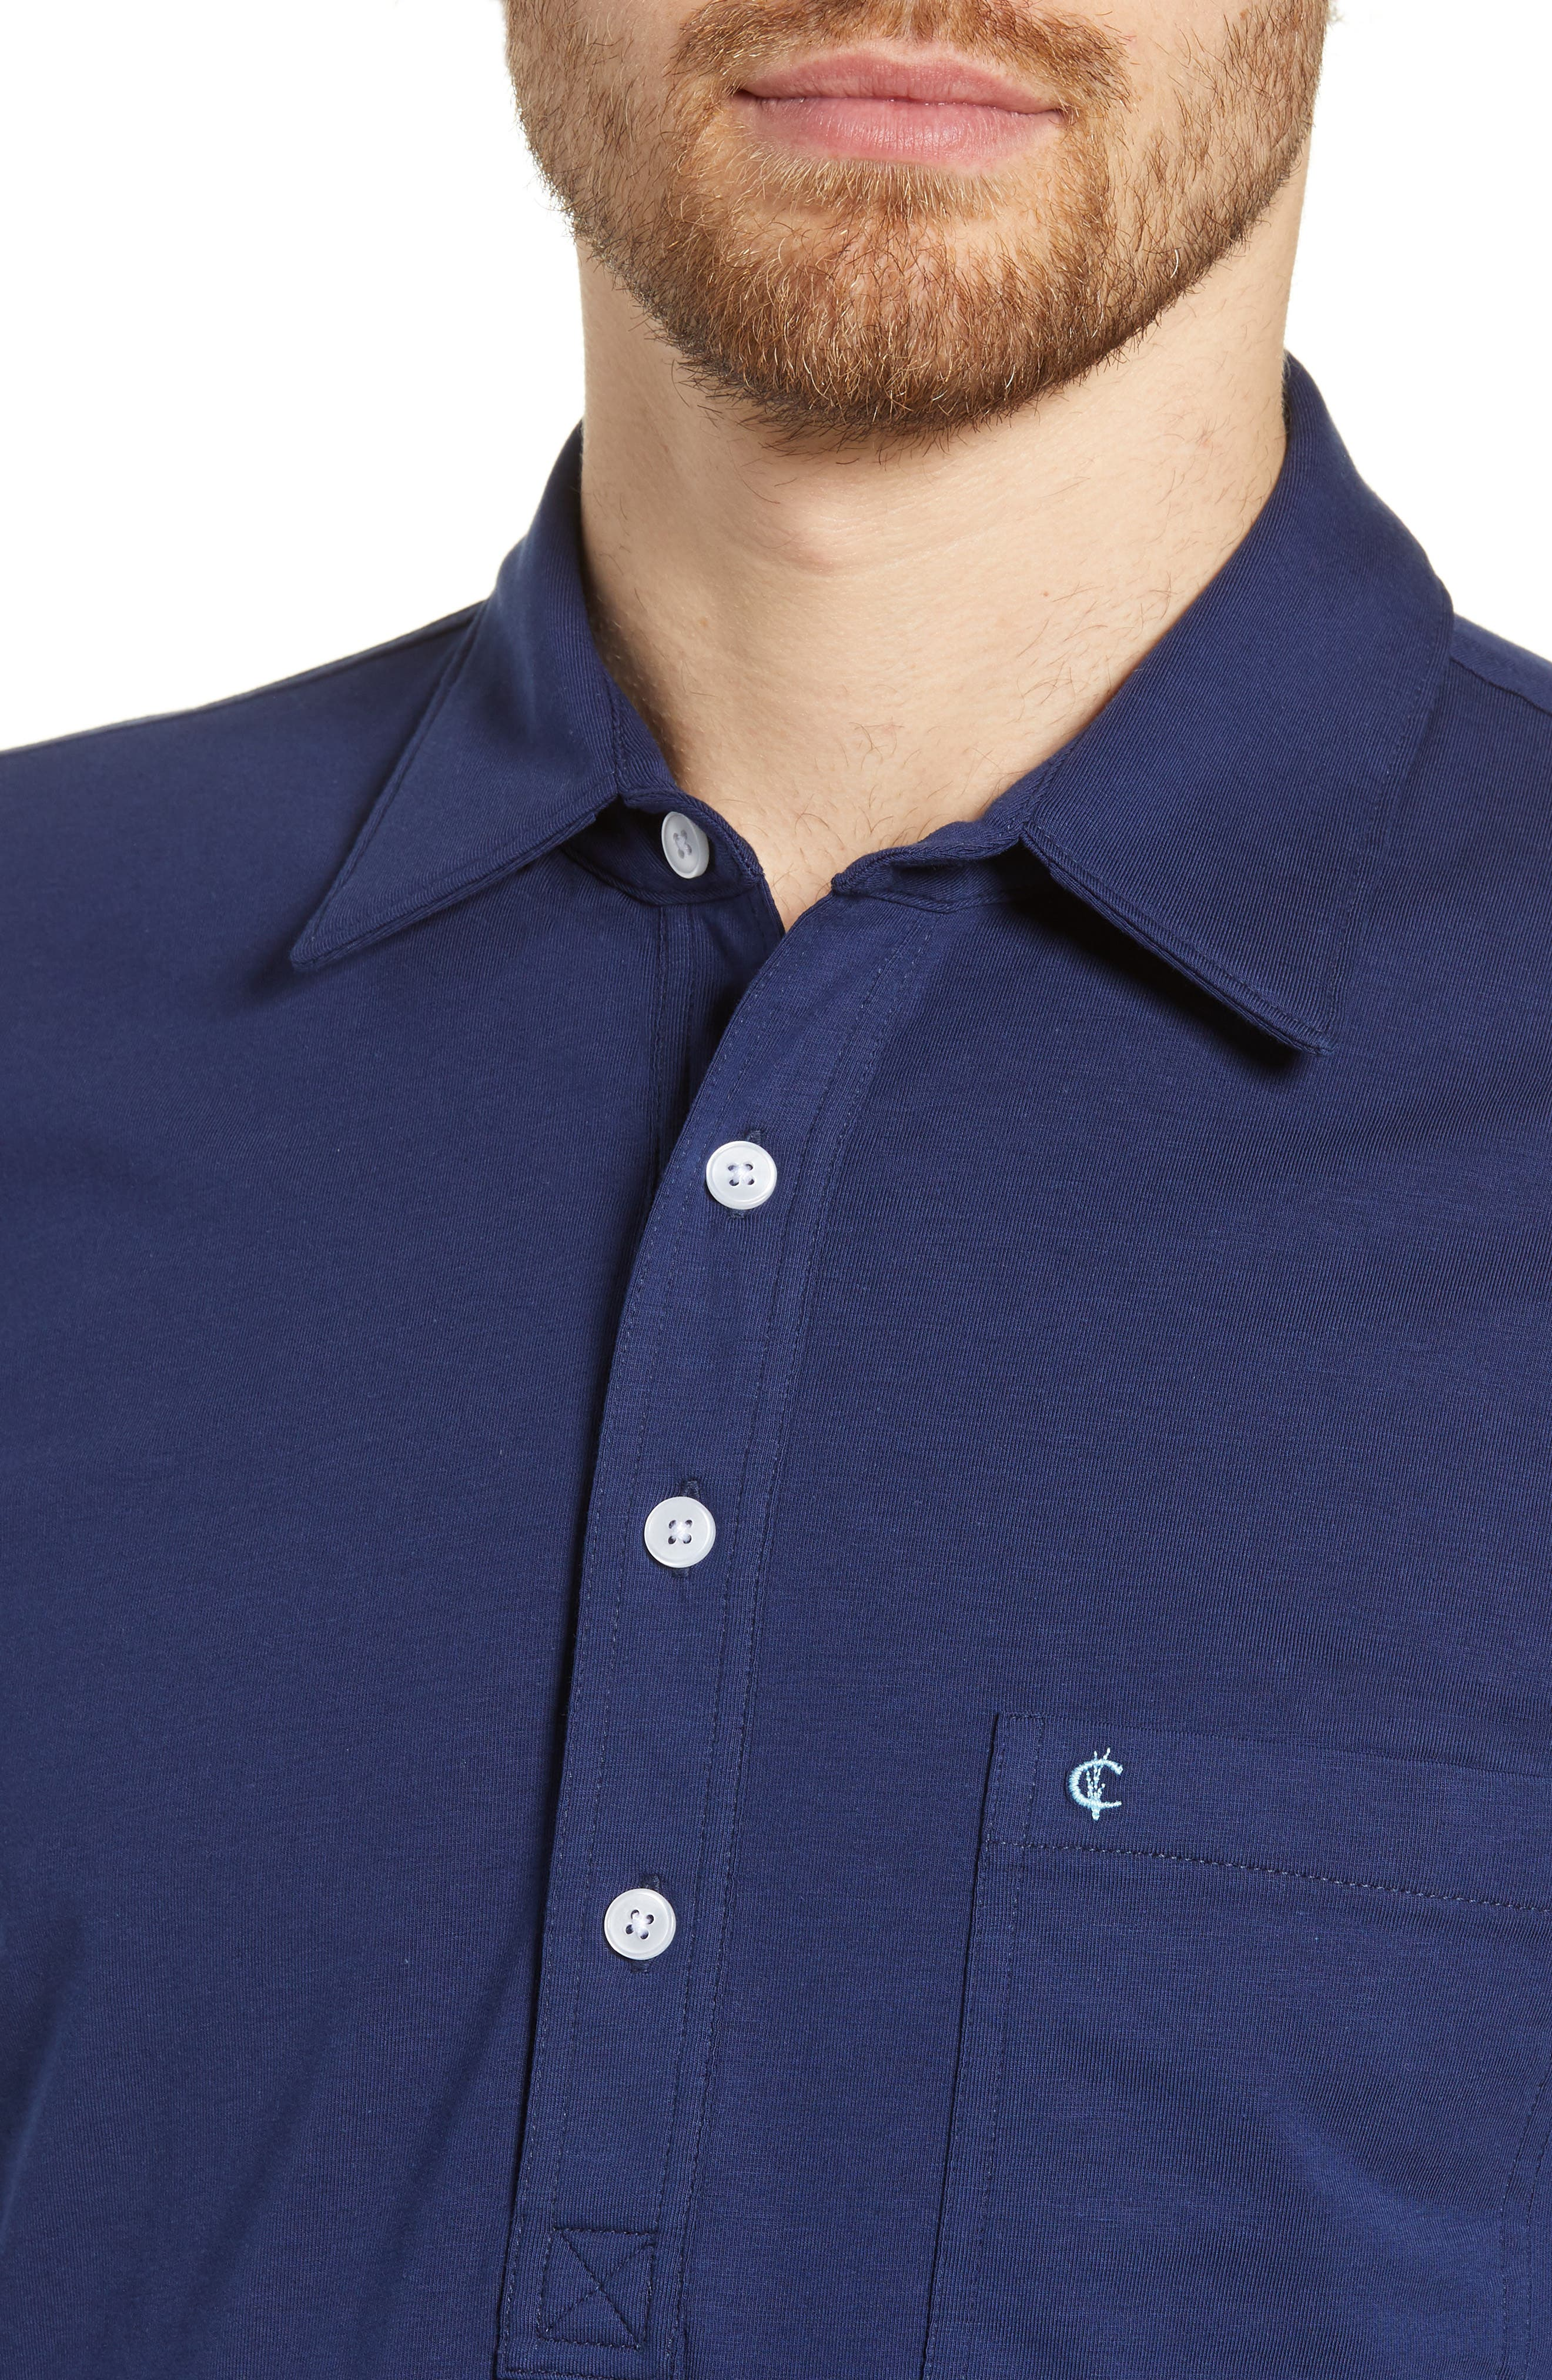 CRIQUET, Players Stretch Jersey Polo, Alternate thumbnail 4, color, NAVY